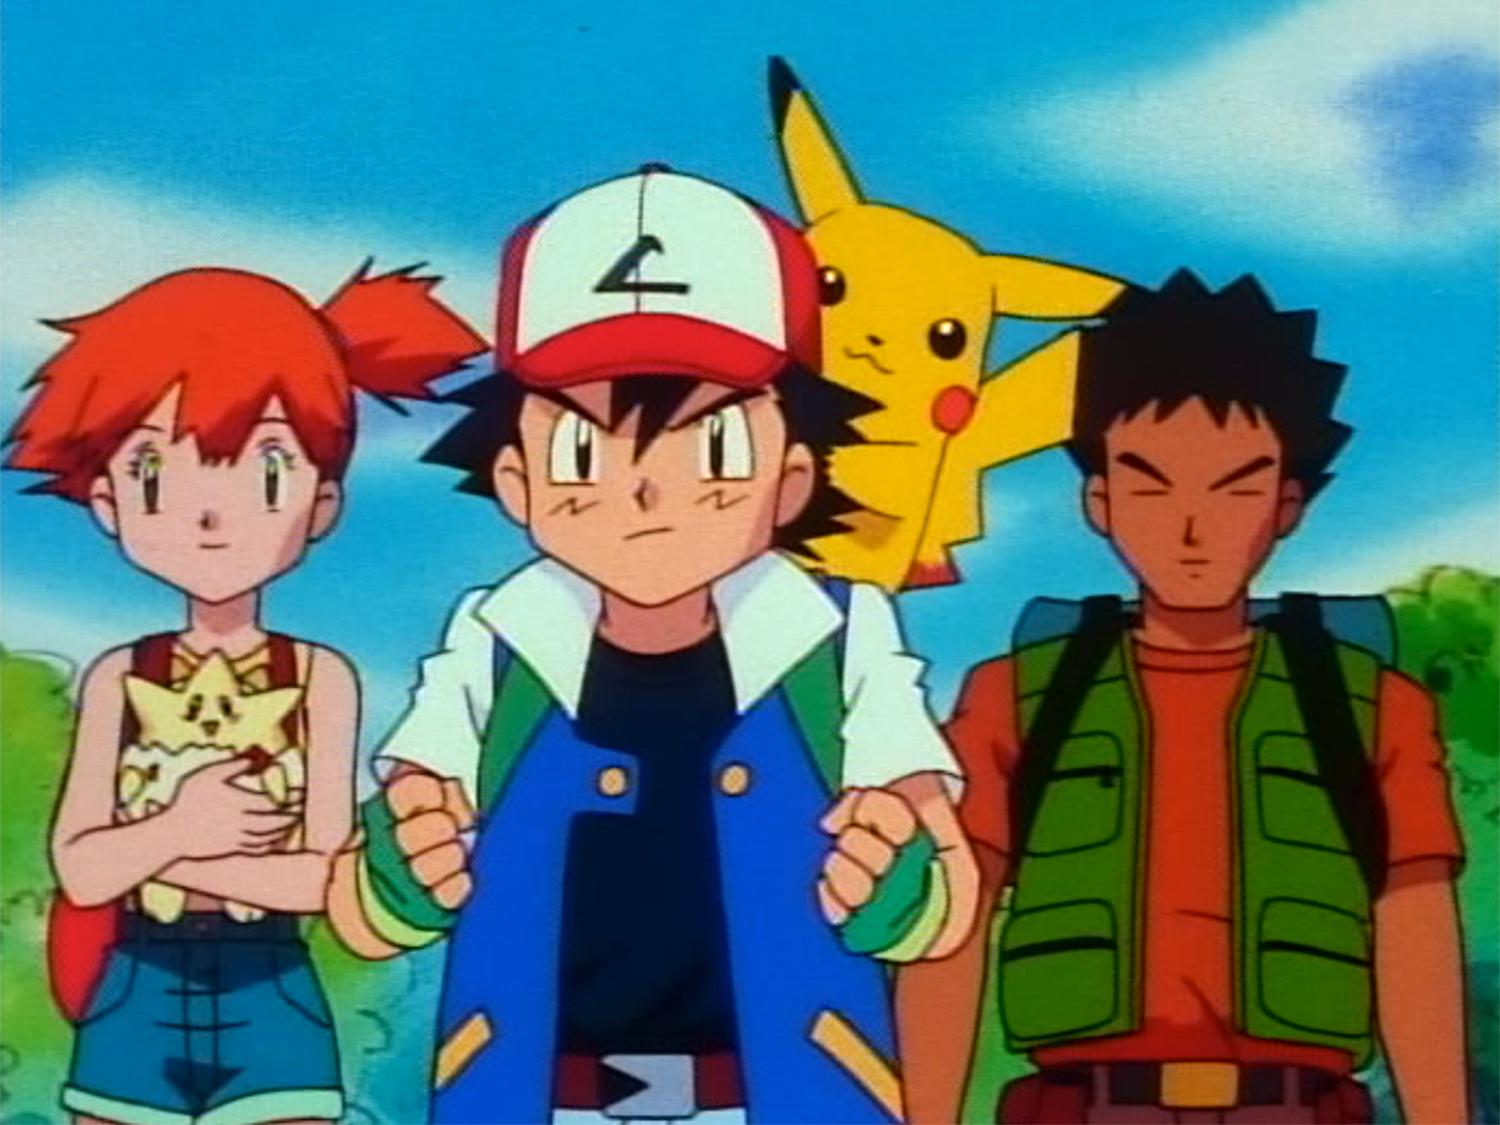 The 'Pokemon' Cartoon Is Still Great, 20 Years Later